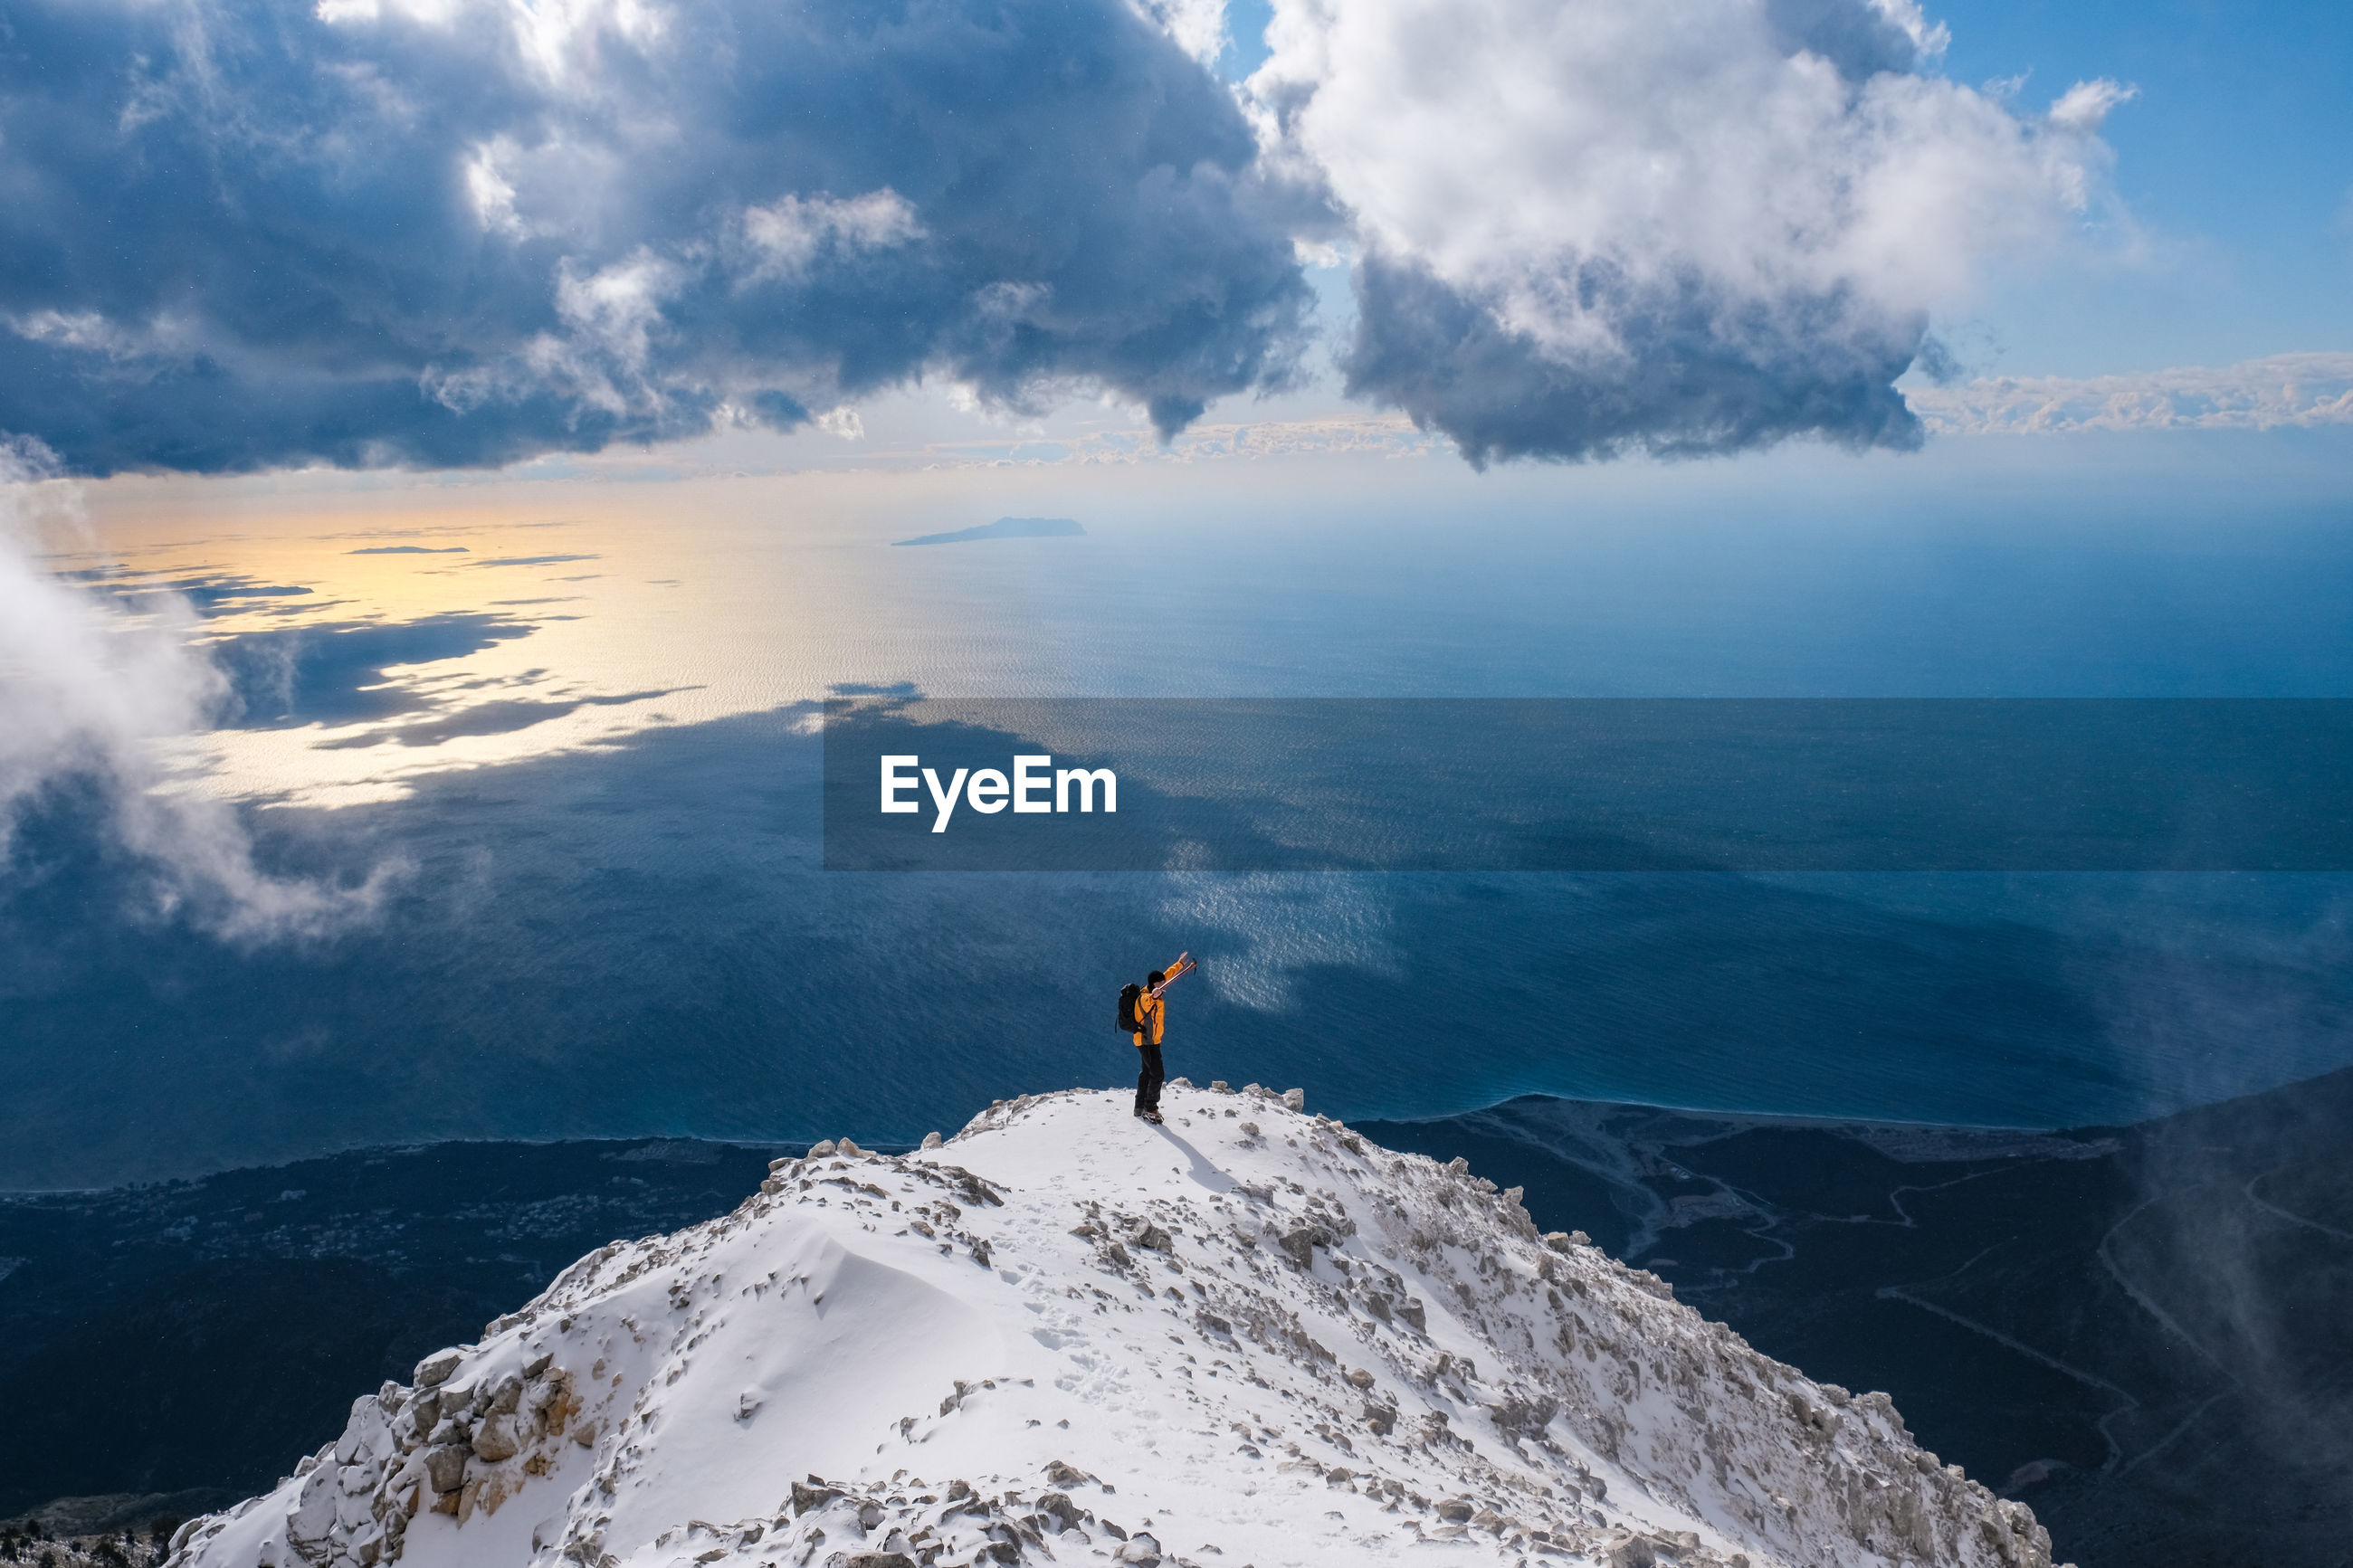 Man looking at sea by snowcapped mountain against sky